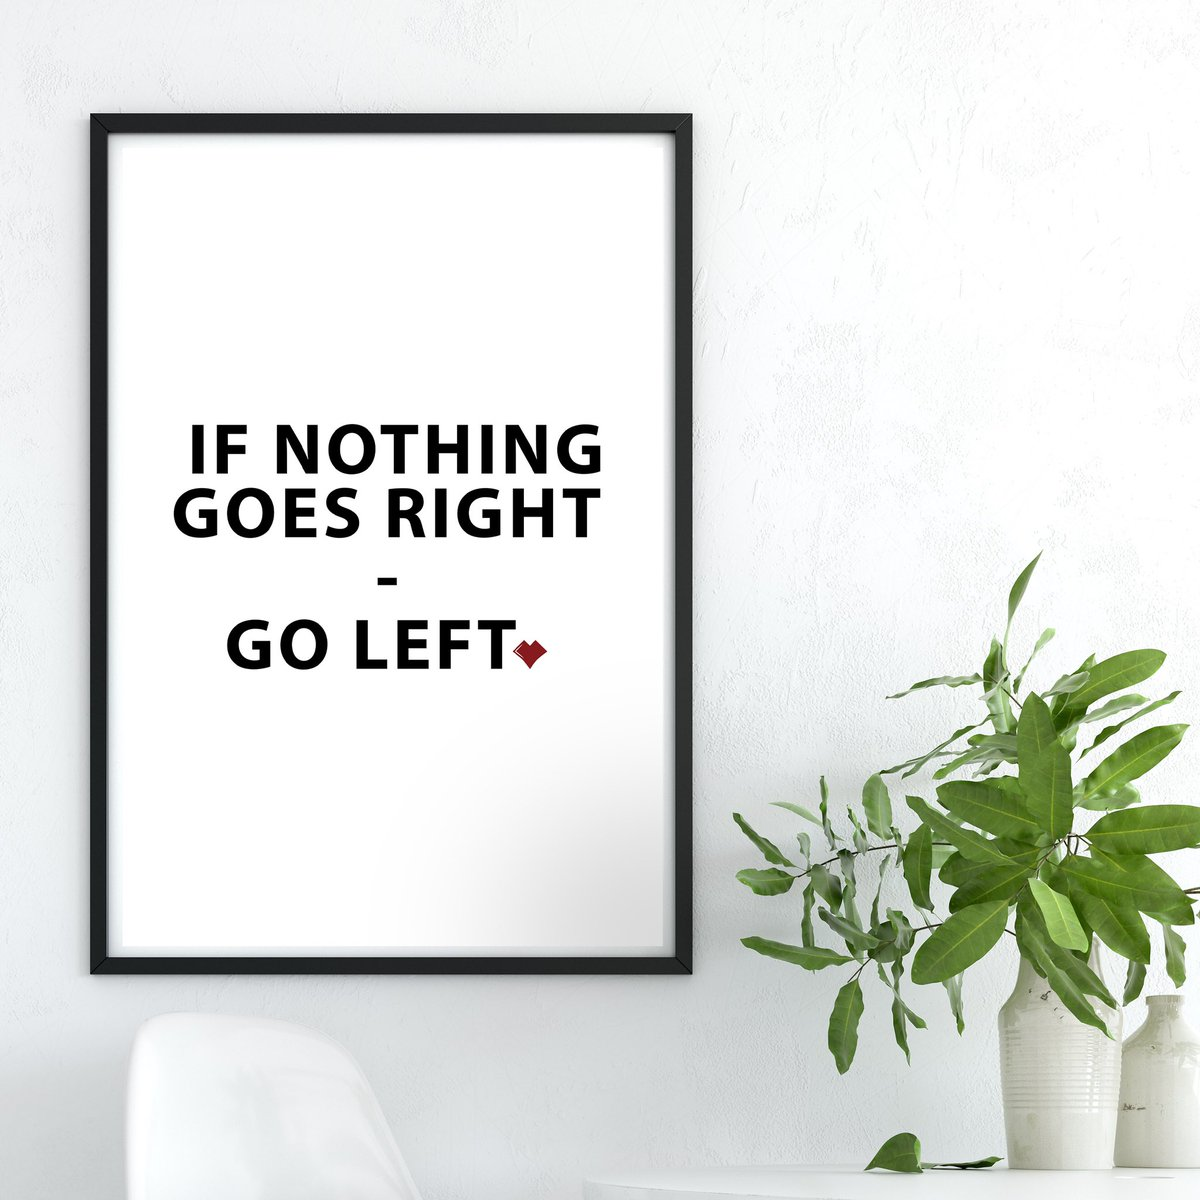 If nothing goes right — go left.  #MondayMotivation #yeg #graphicdesign #chewydesigns